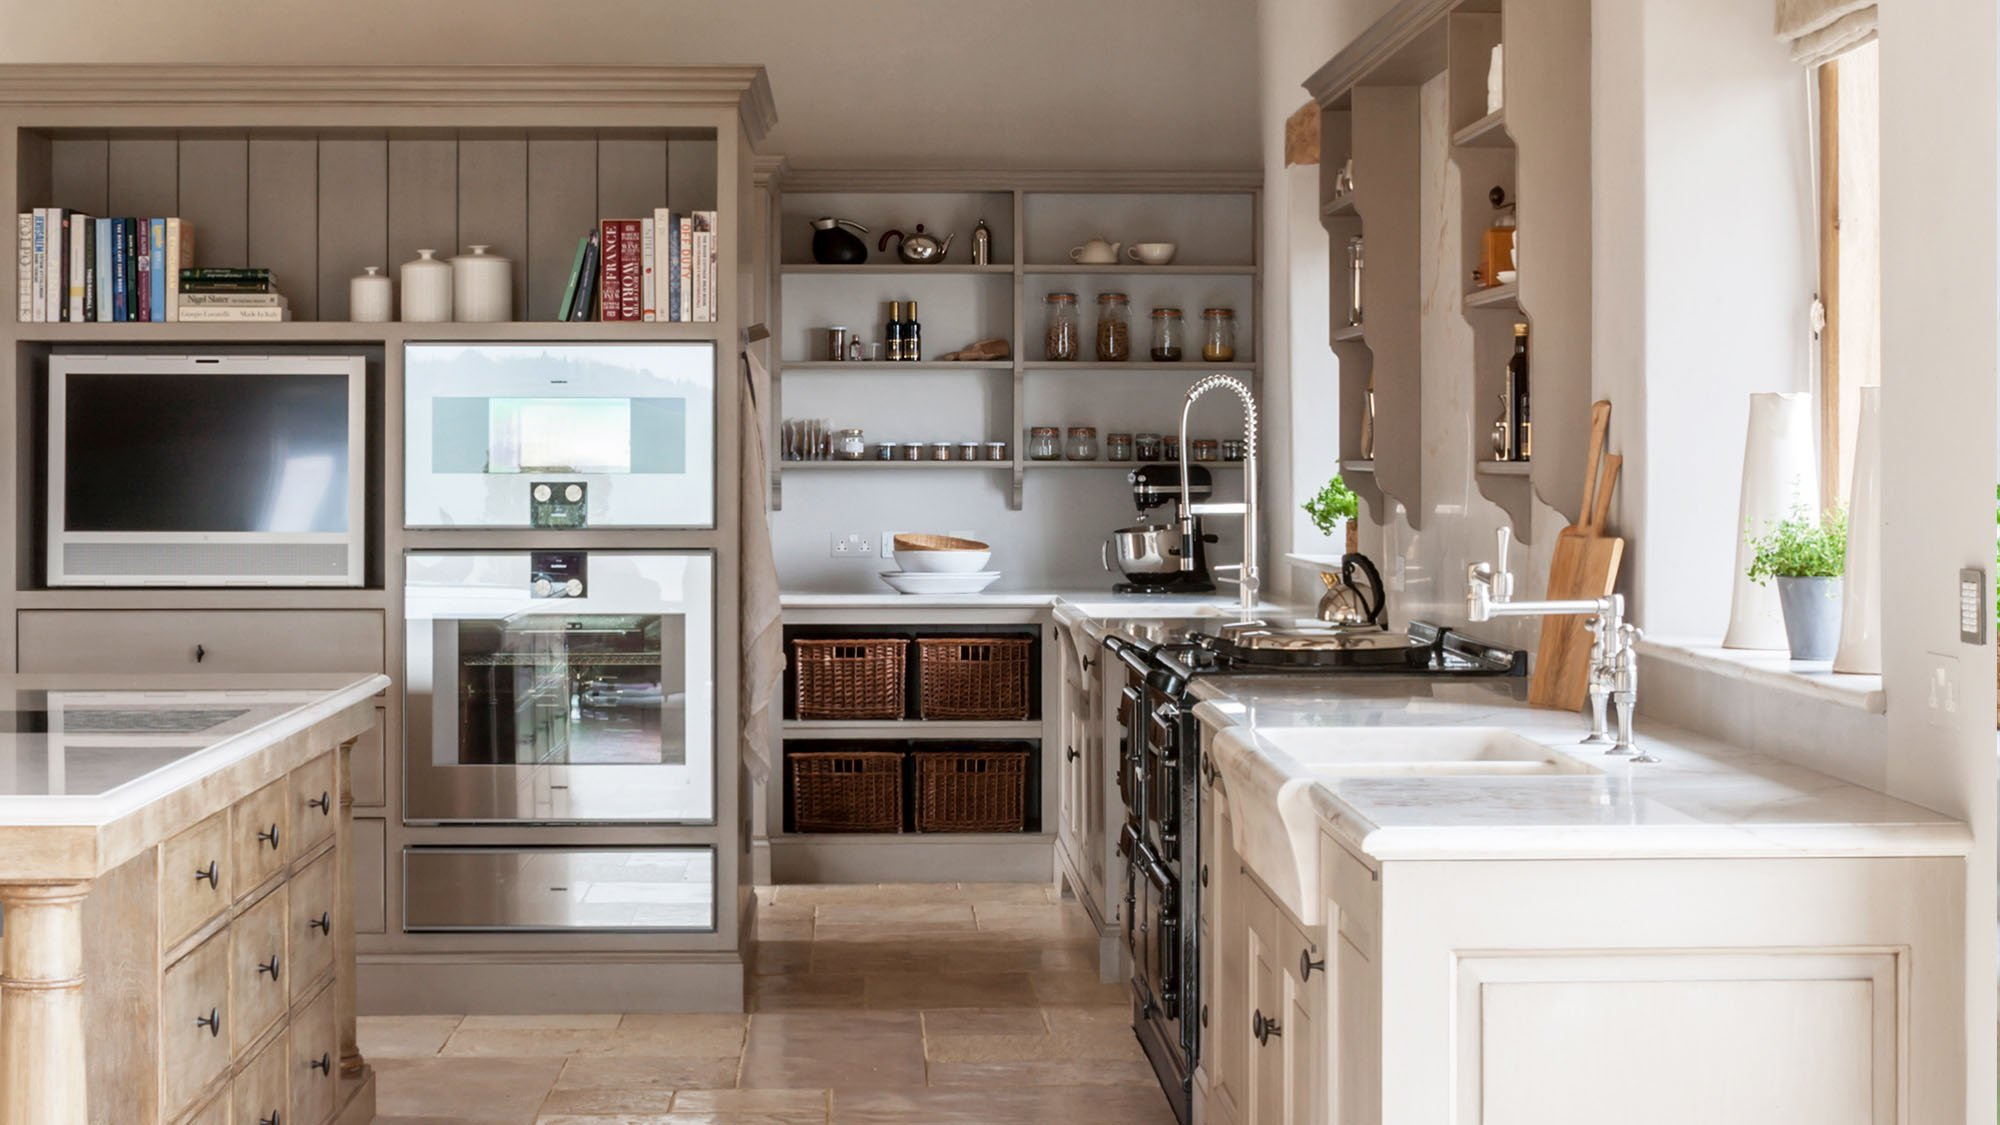 Designing a bespoke, luxury kitchen - Quarta option